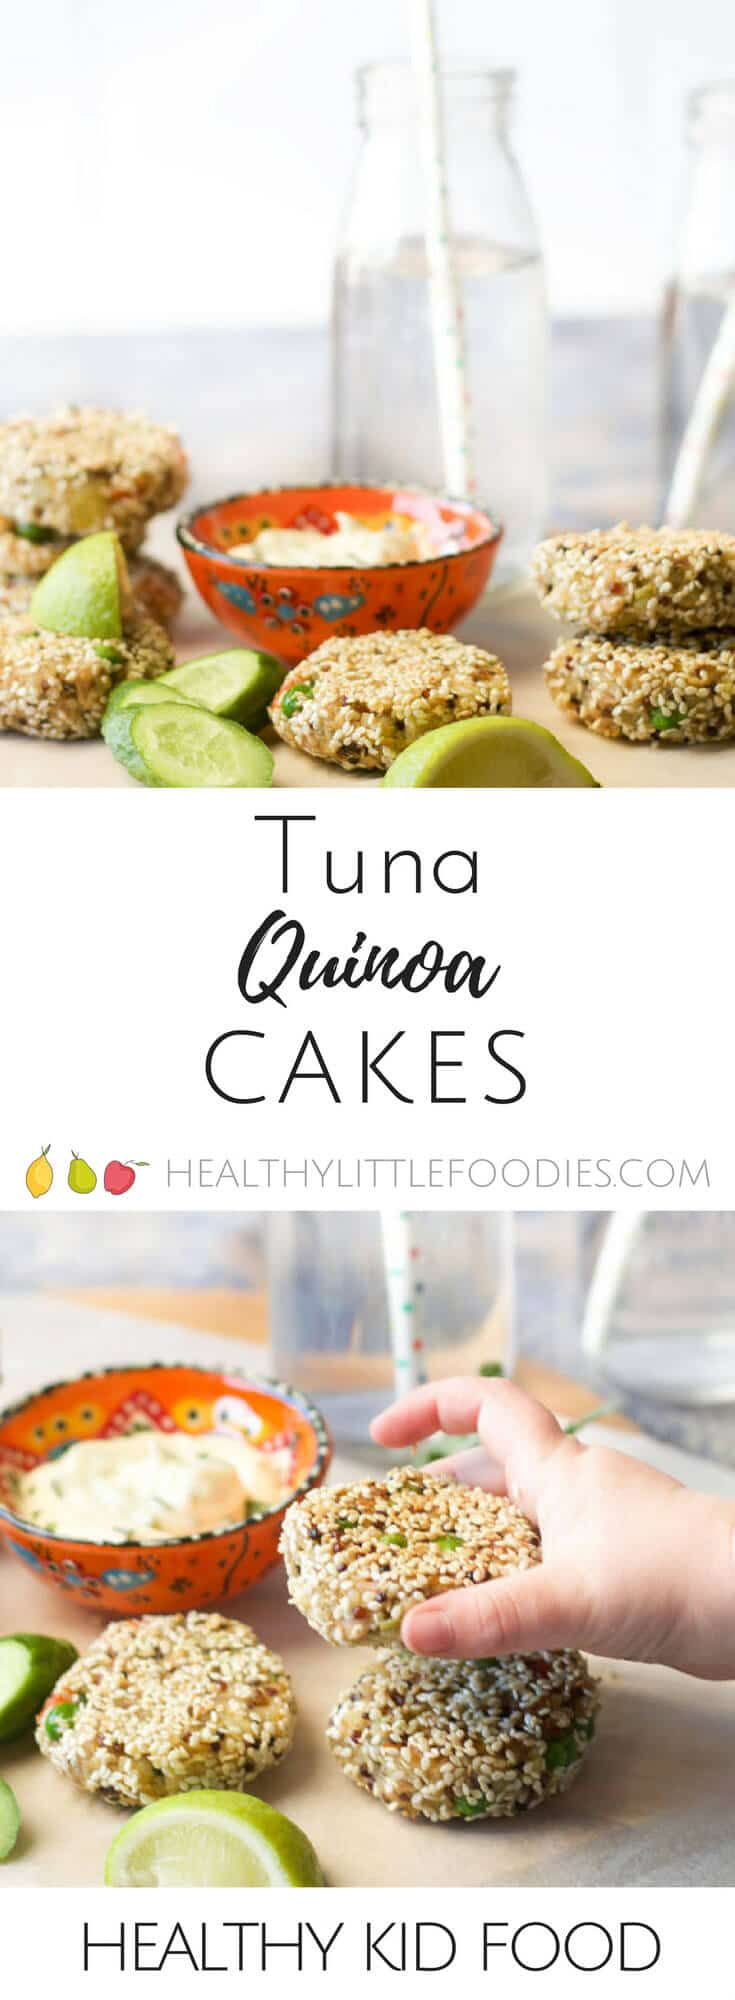 These tuna quinoa cakes are great as part of a main meal or can be popped into the lunch box the next day. #Freezer friendly. #Gluten Free #Dairy Free.